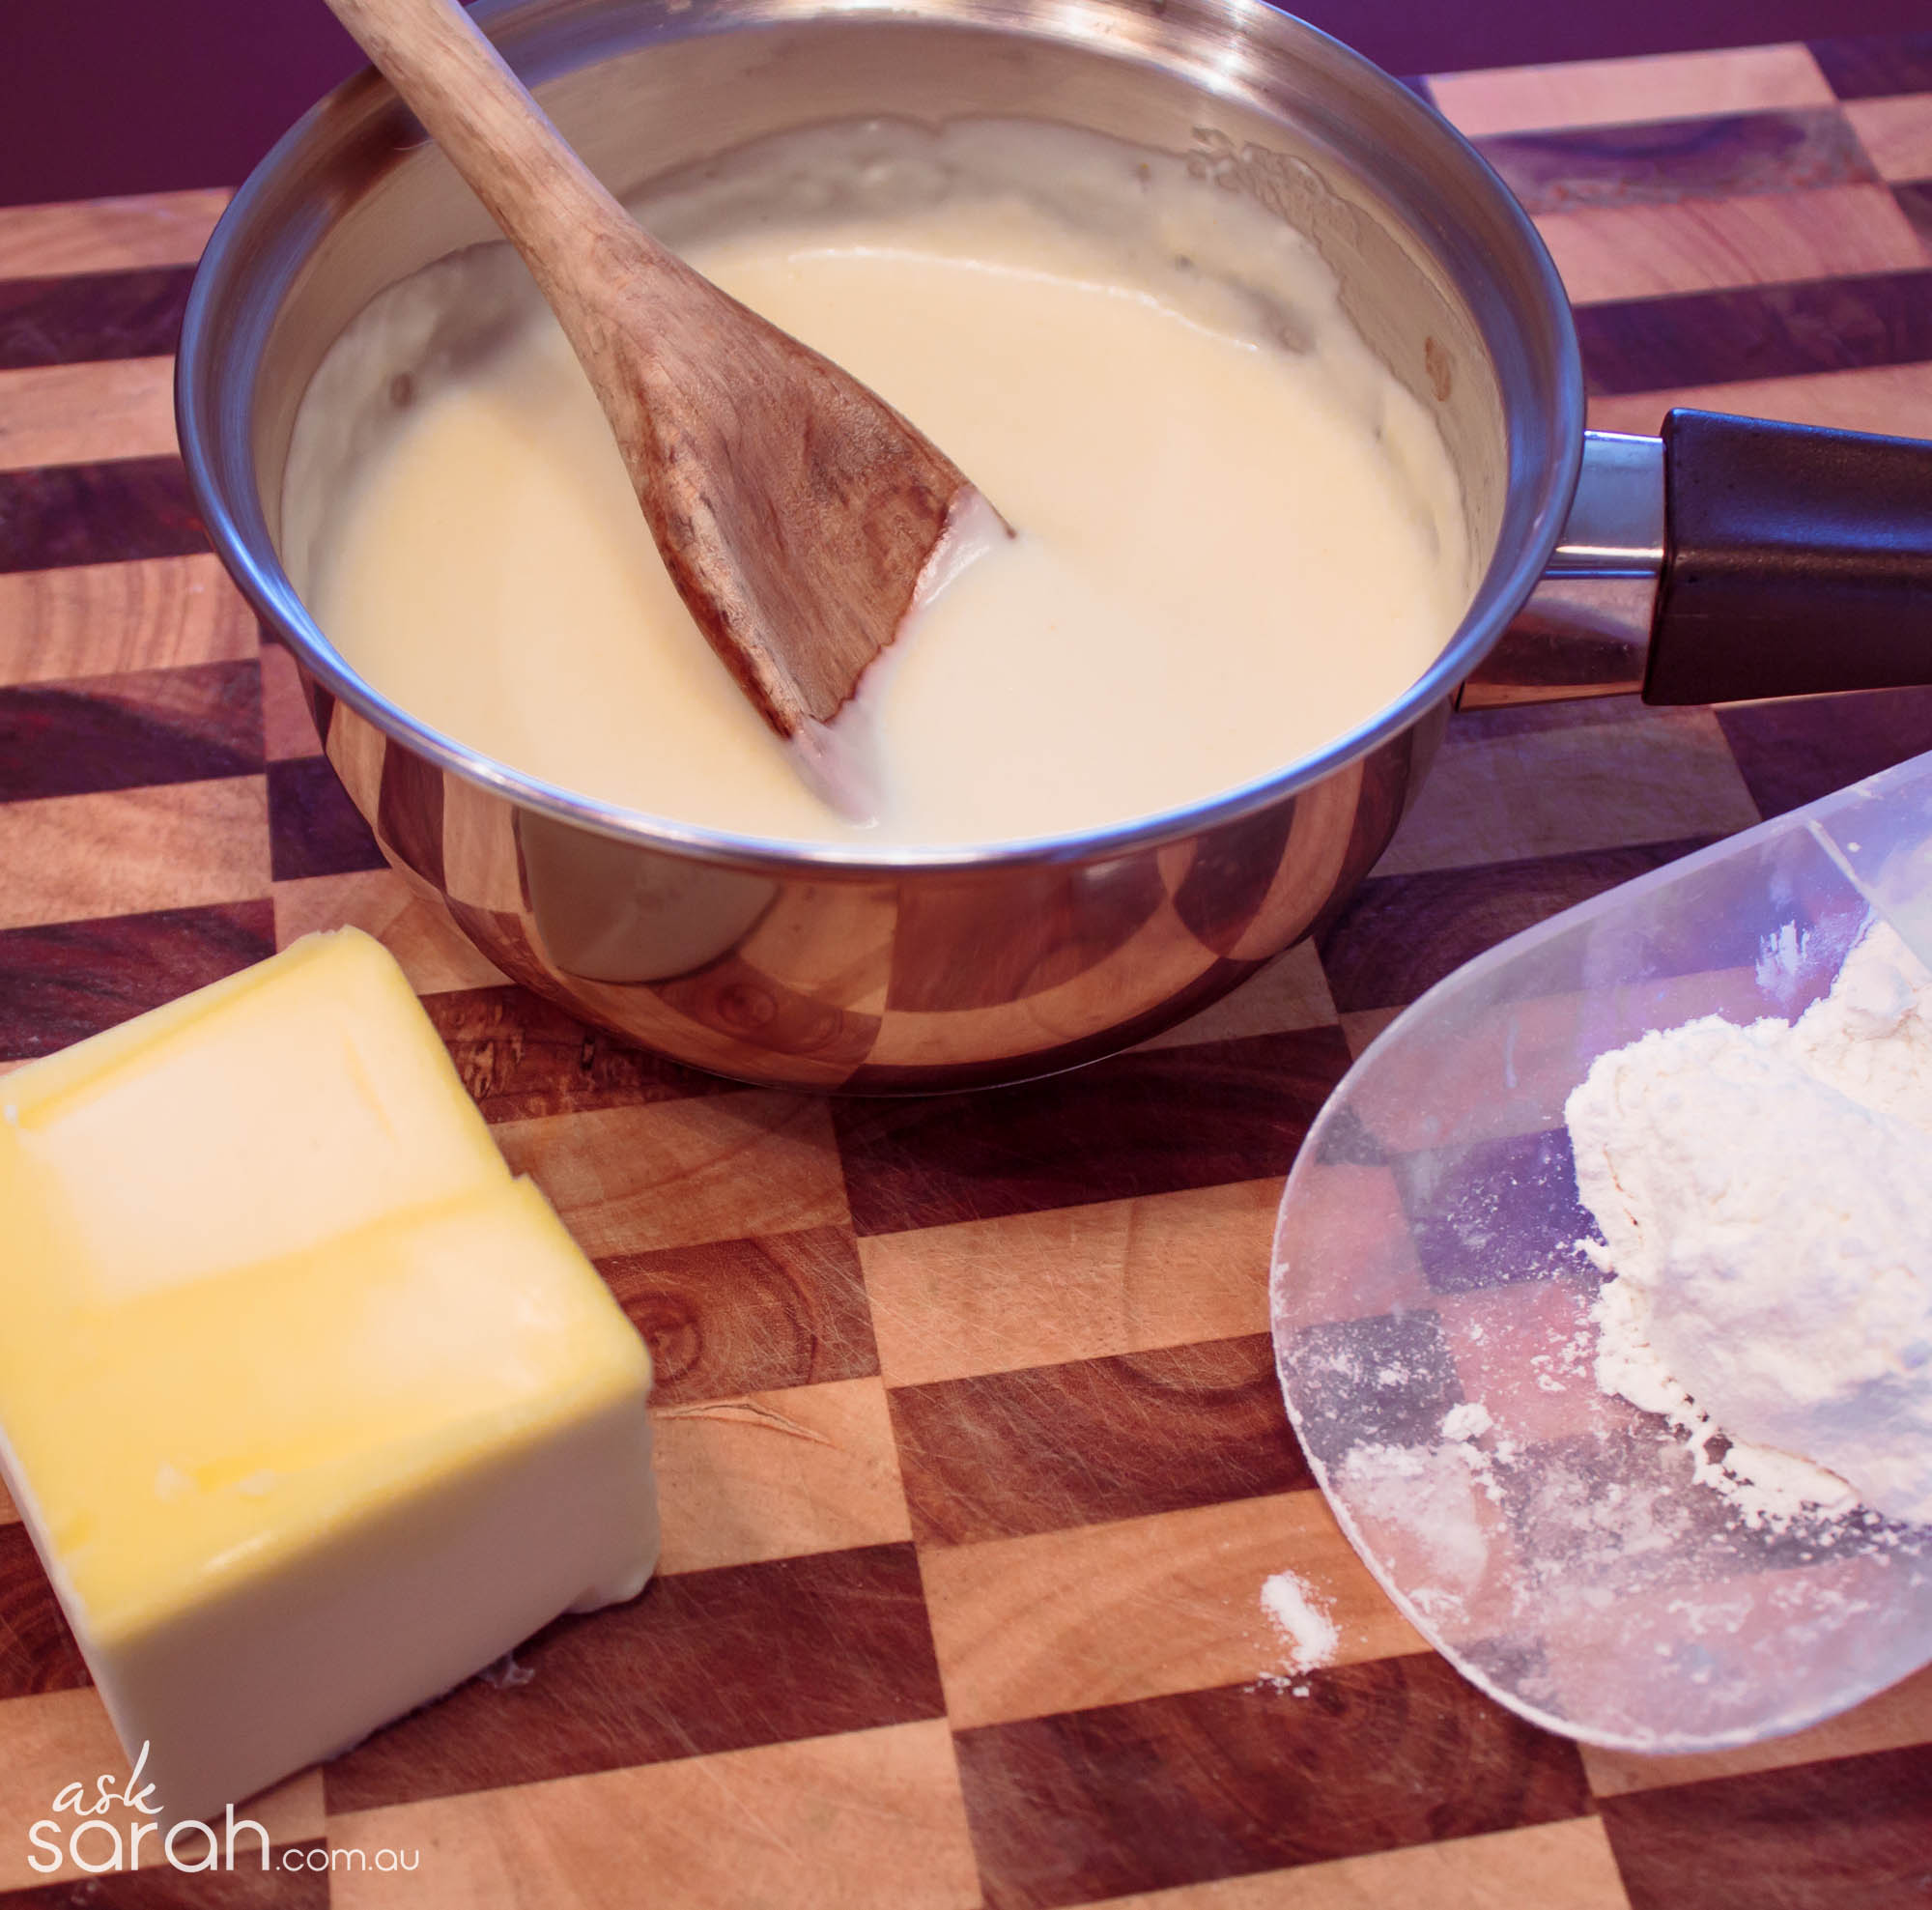 Recipe: Béchamel Sauce {Roux Based White Sauce}